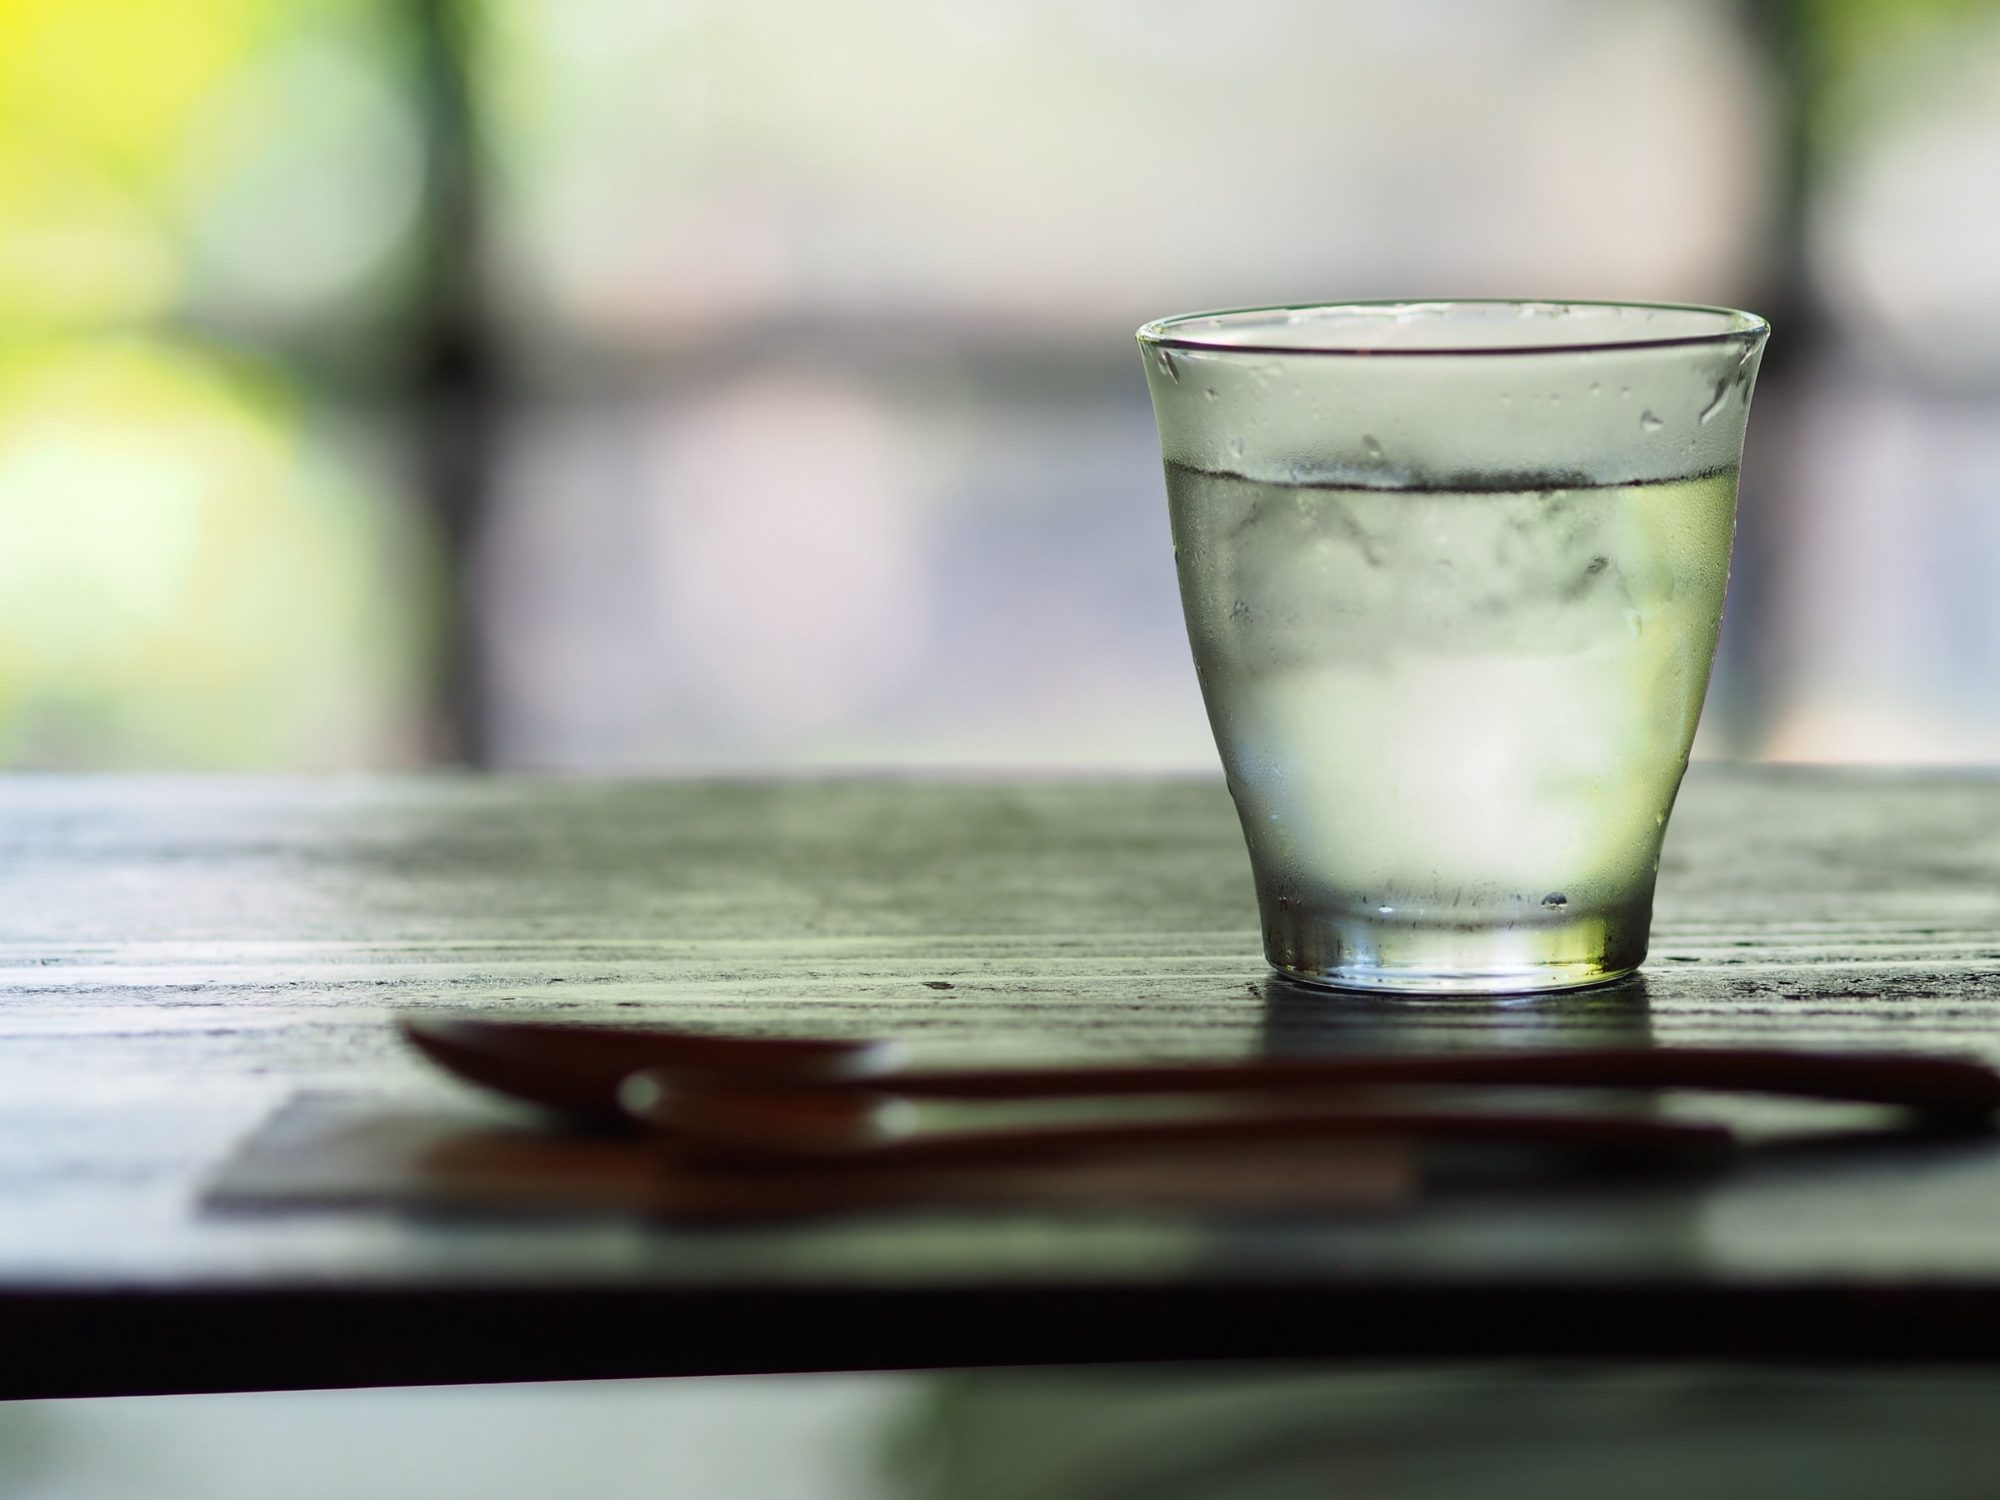 10 Reasons We Need To Drink More Water When Sheltering